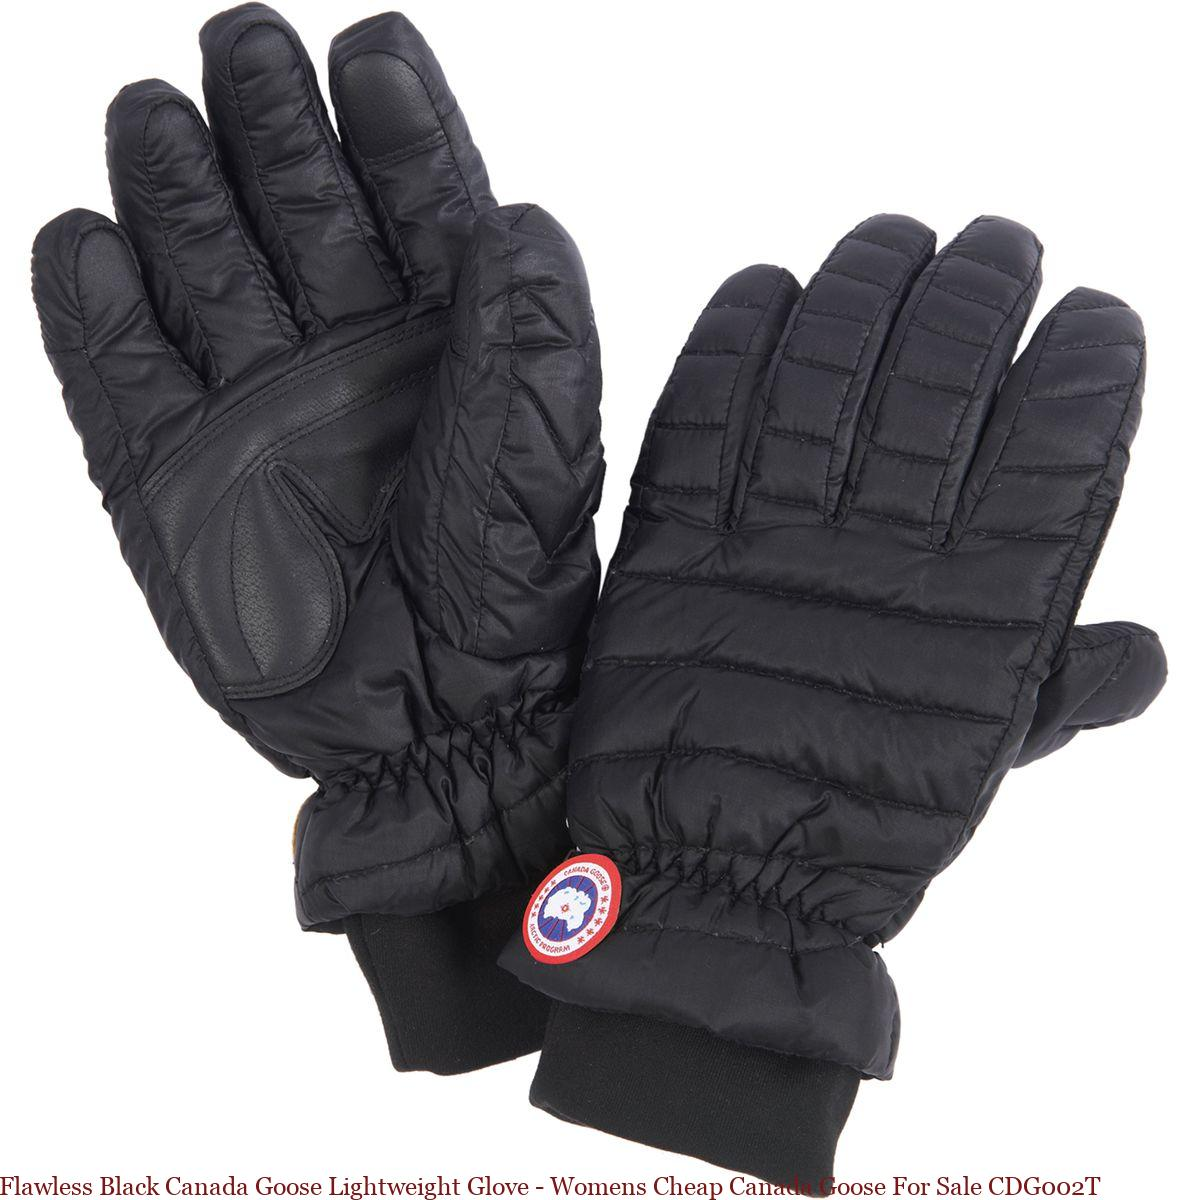 Flawless Black Canada Goose Lightweight Glove Womens Cheap Canada Goose For Sale Cdg002t